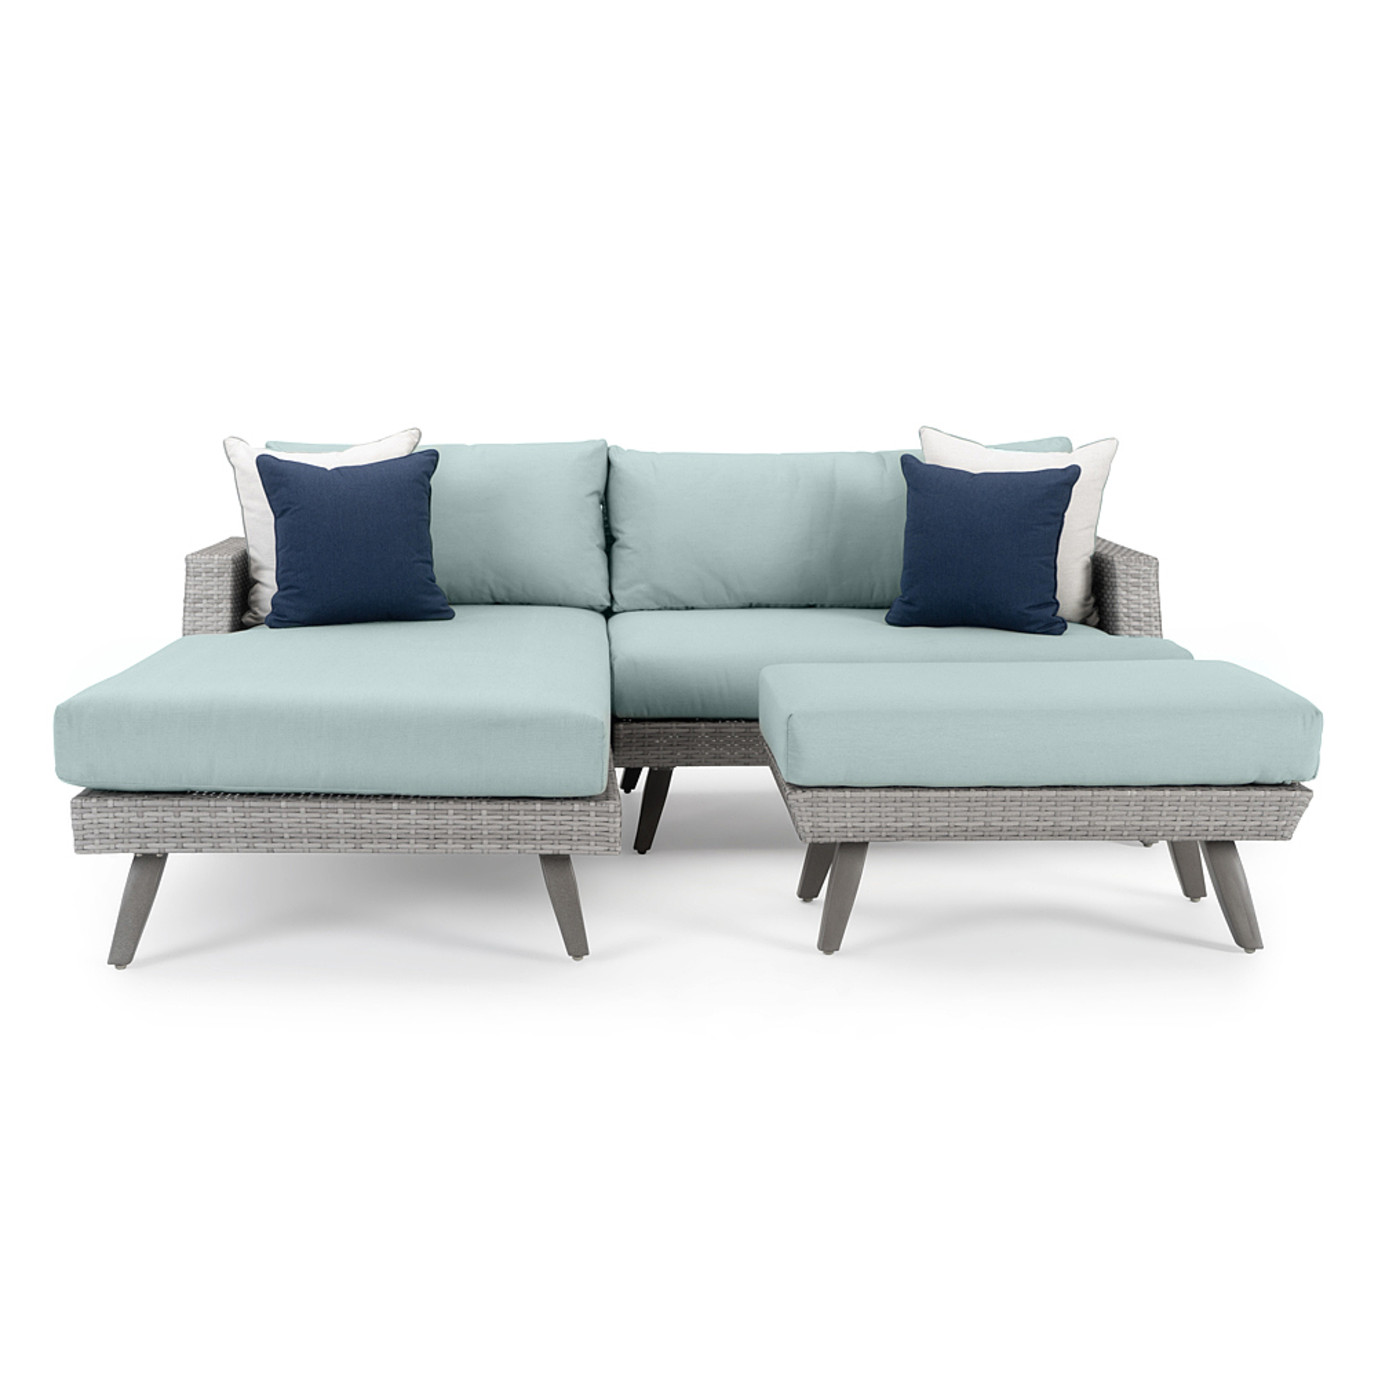 Portofino® Casual 3pc Chaise Seating Set - Spa Blue